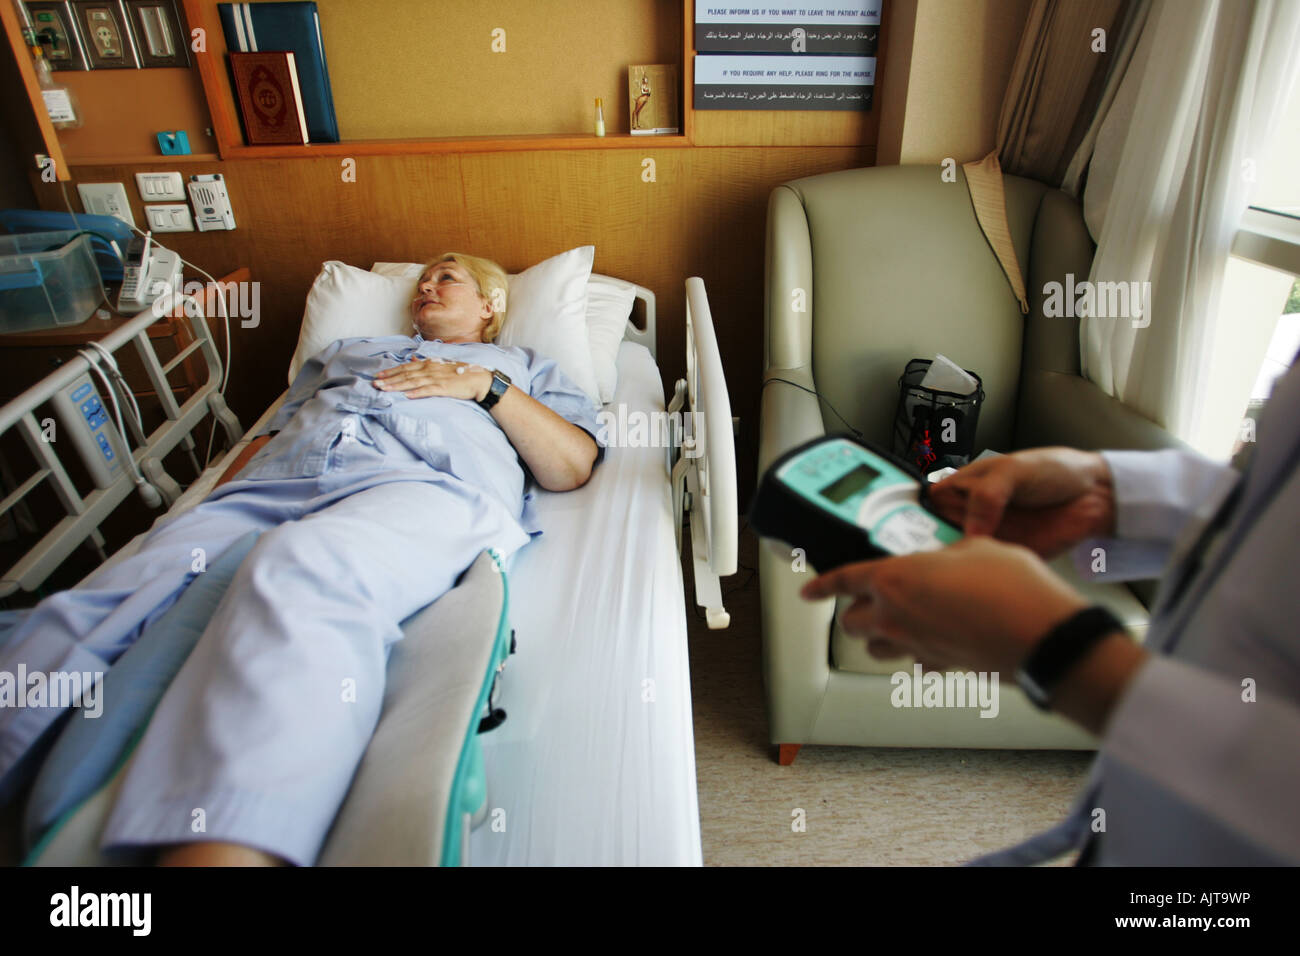 Shirley Anderson was on holidays in China when she had a accident and was evacuated to The Bangkok Hospital Bangkok - Stock Image